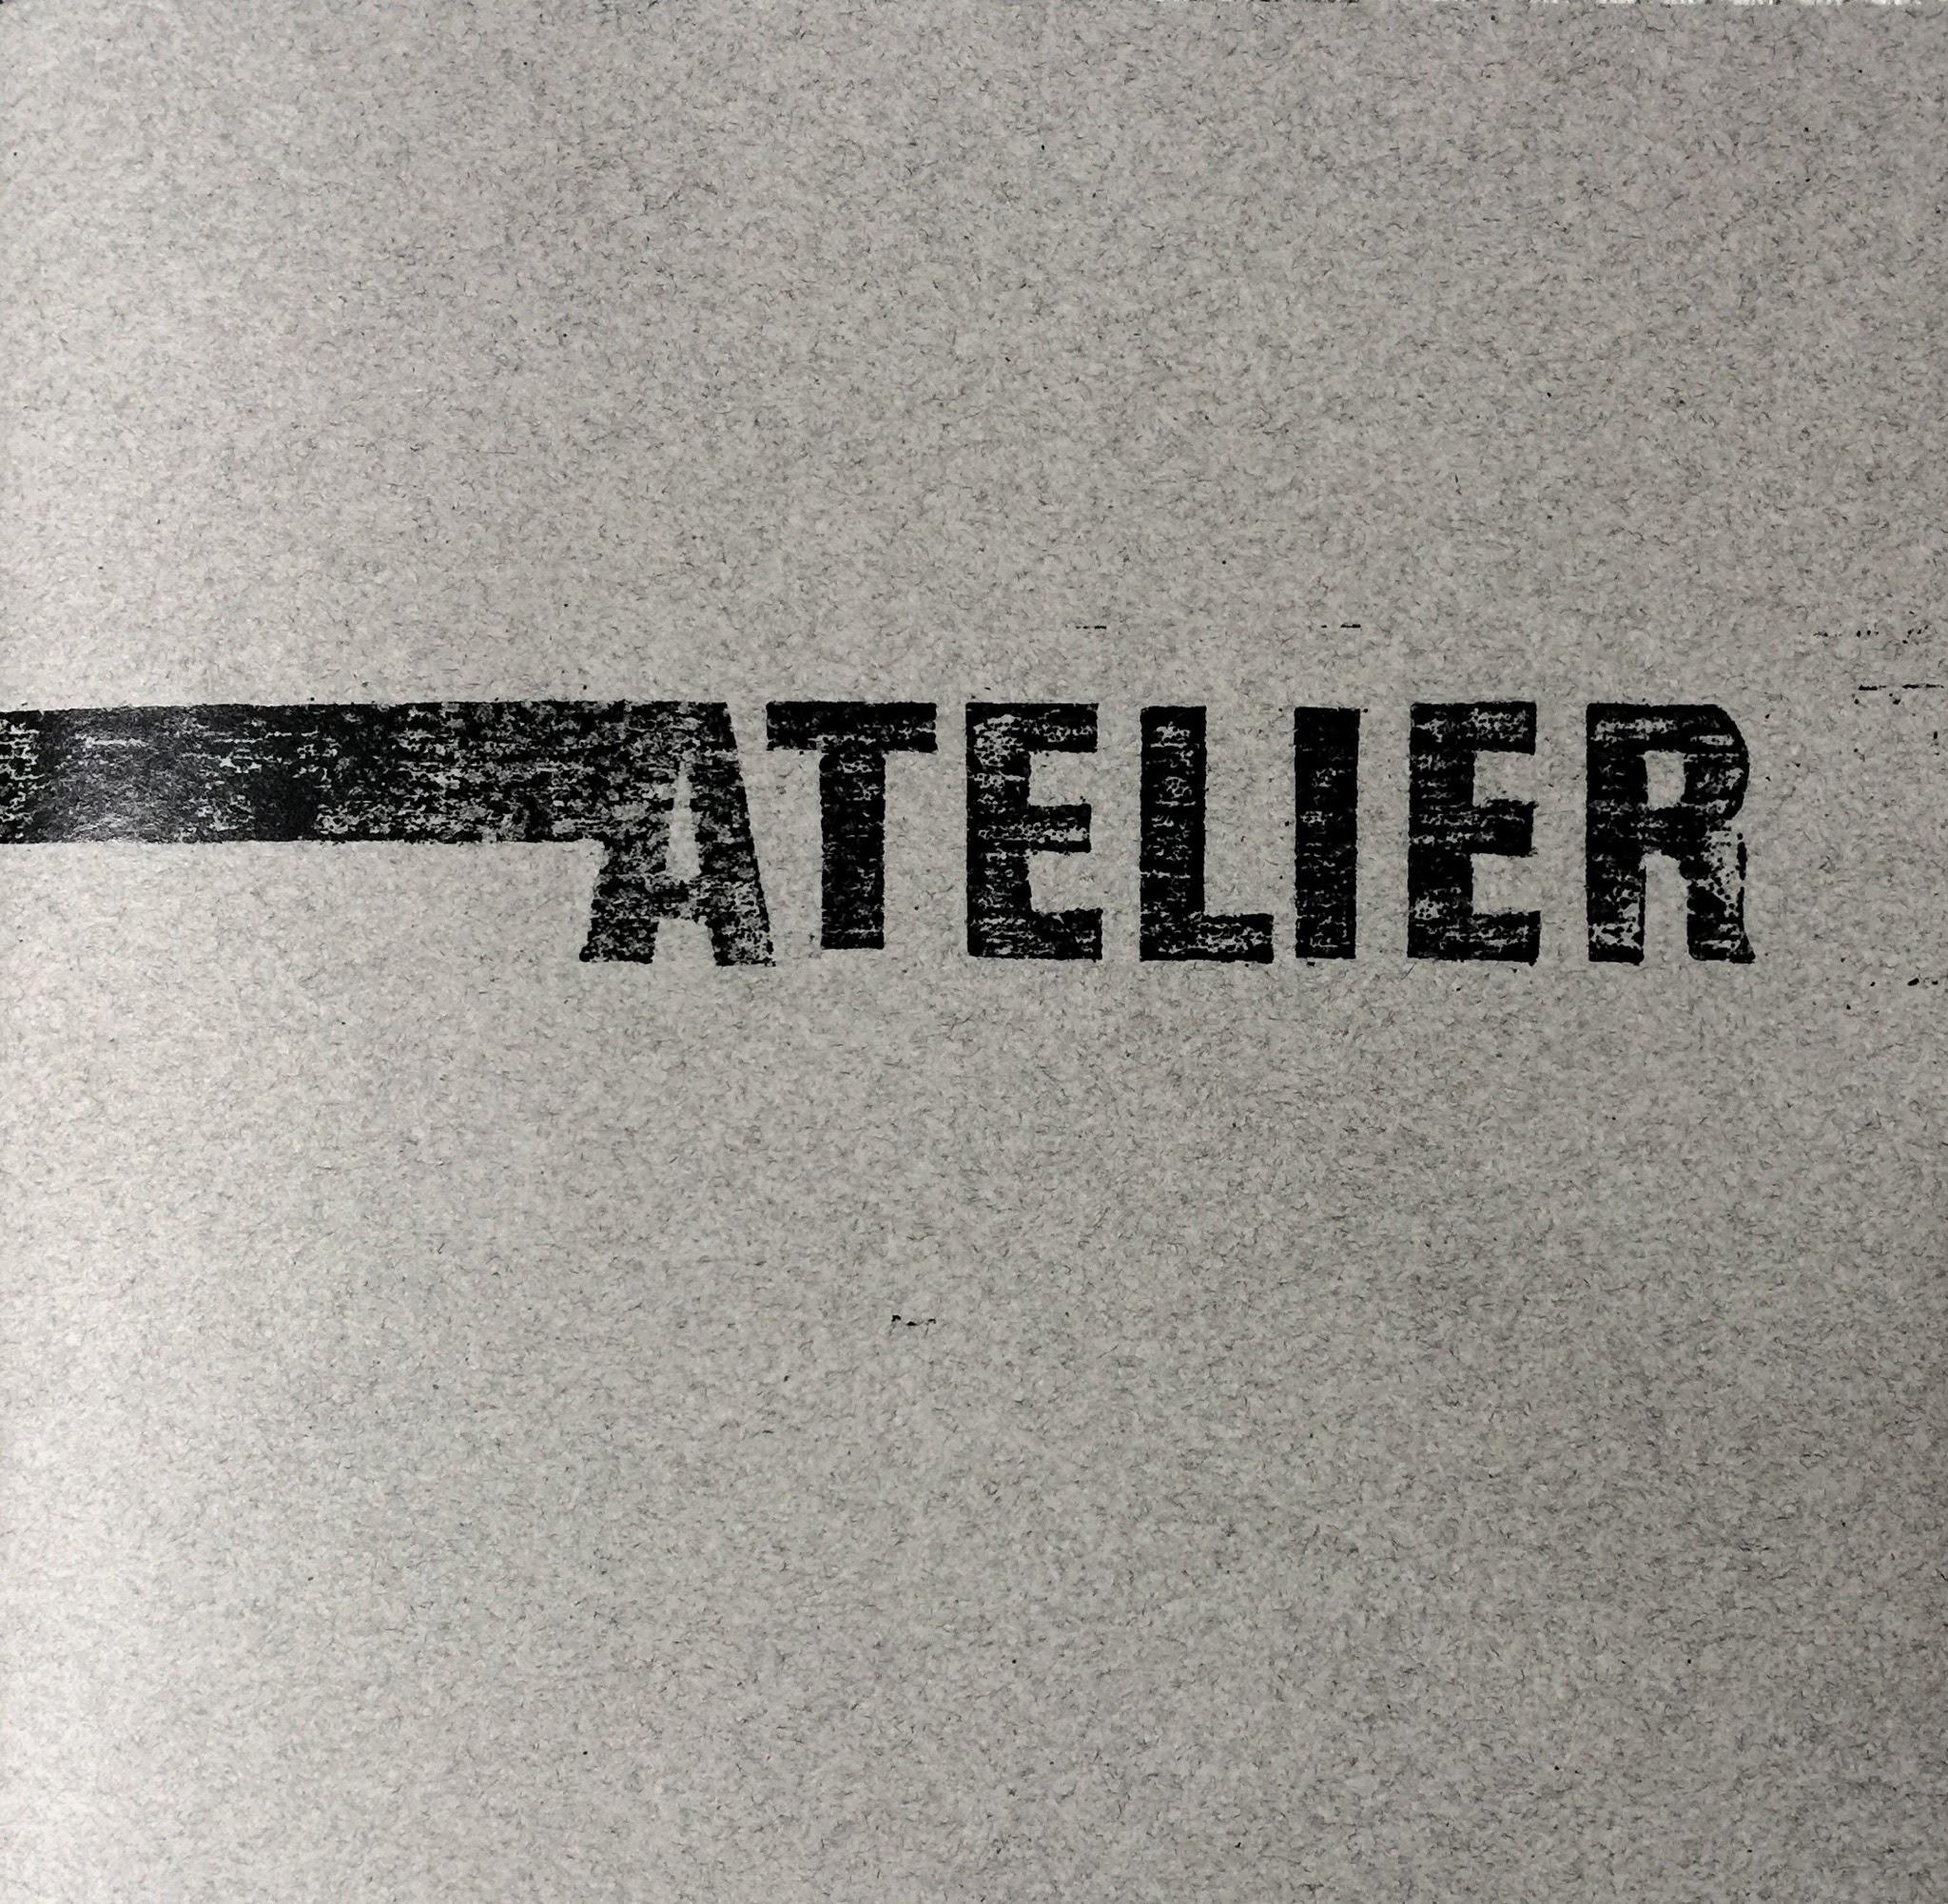 poems | books| Atelier by John Most